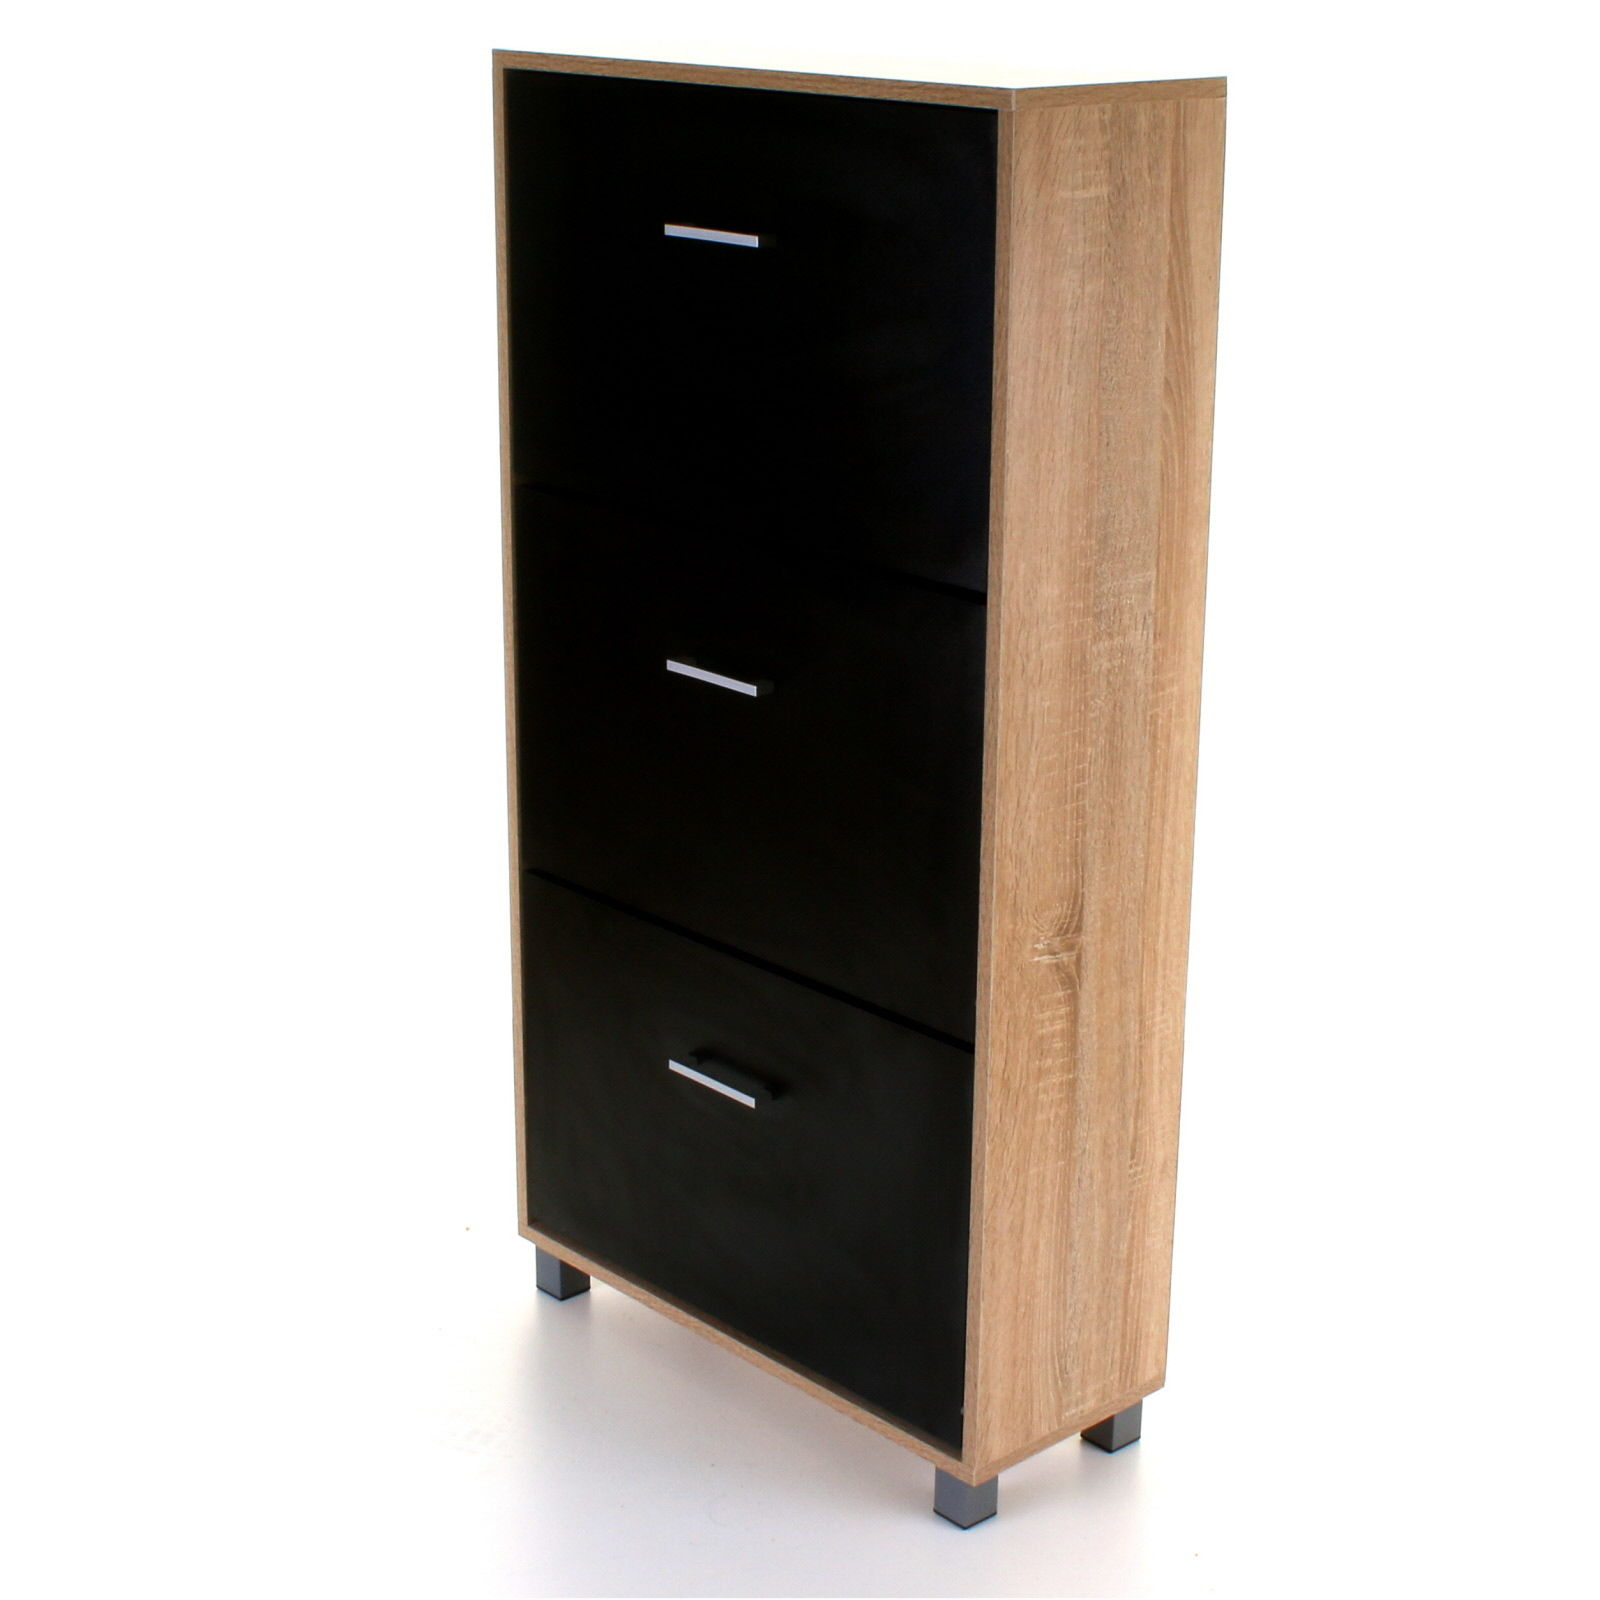 3 Drawers Shoe Cabinet Rack Storage Wooden Furniture